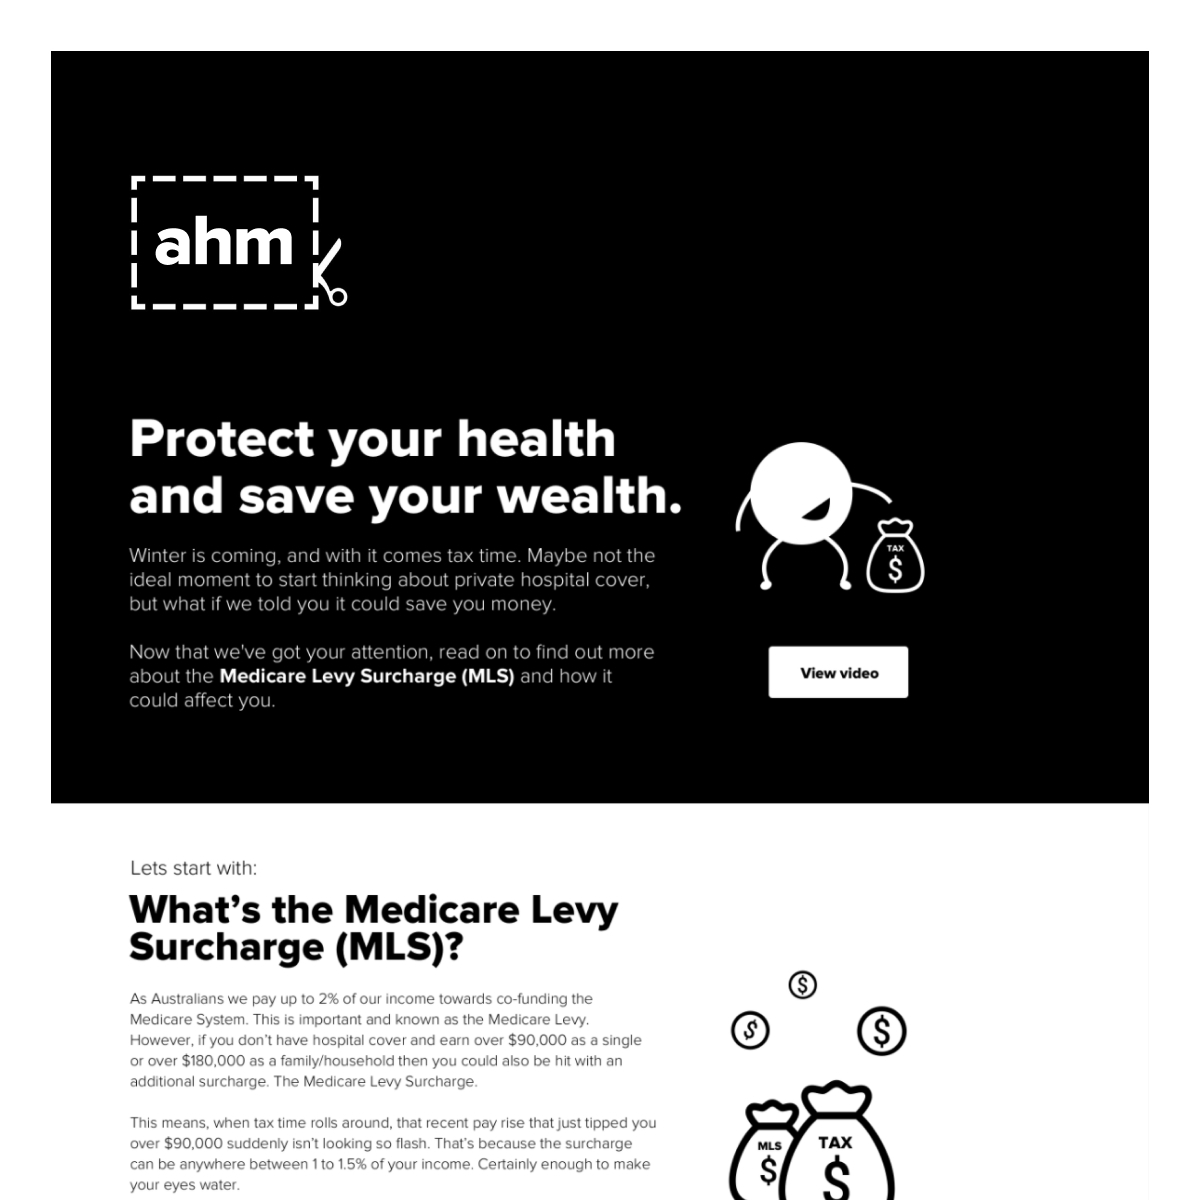 ahm: Tax Time Landing Page